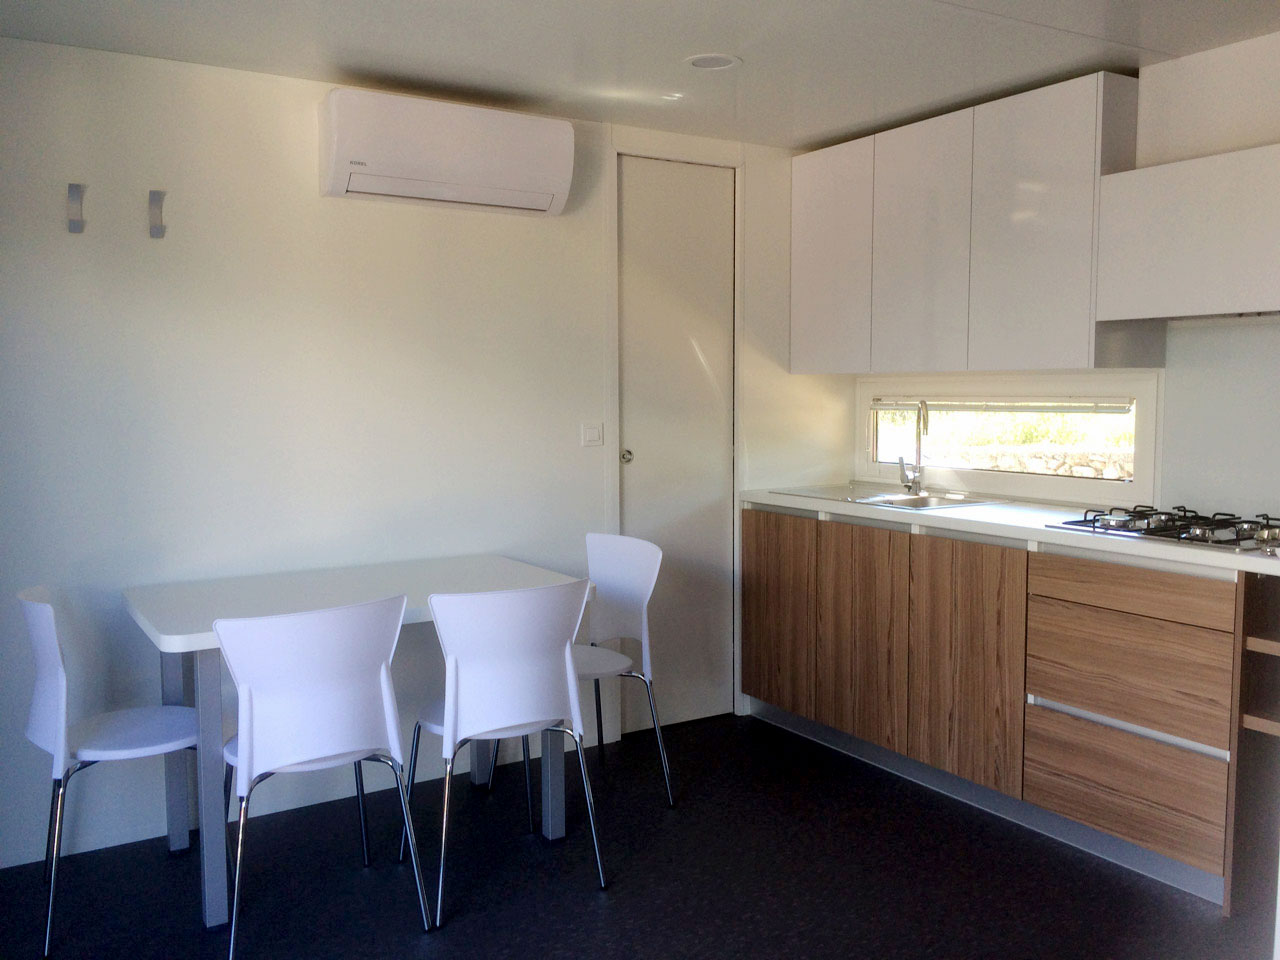 Image of the kitchen and dining room in KS Holiday Suite mobile house, Jezera, Murter, Dalmatia, Croatia